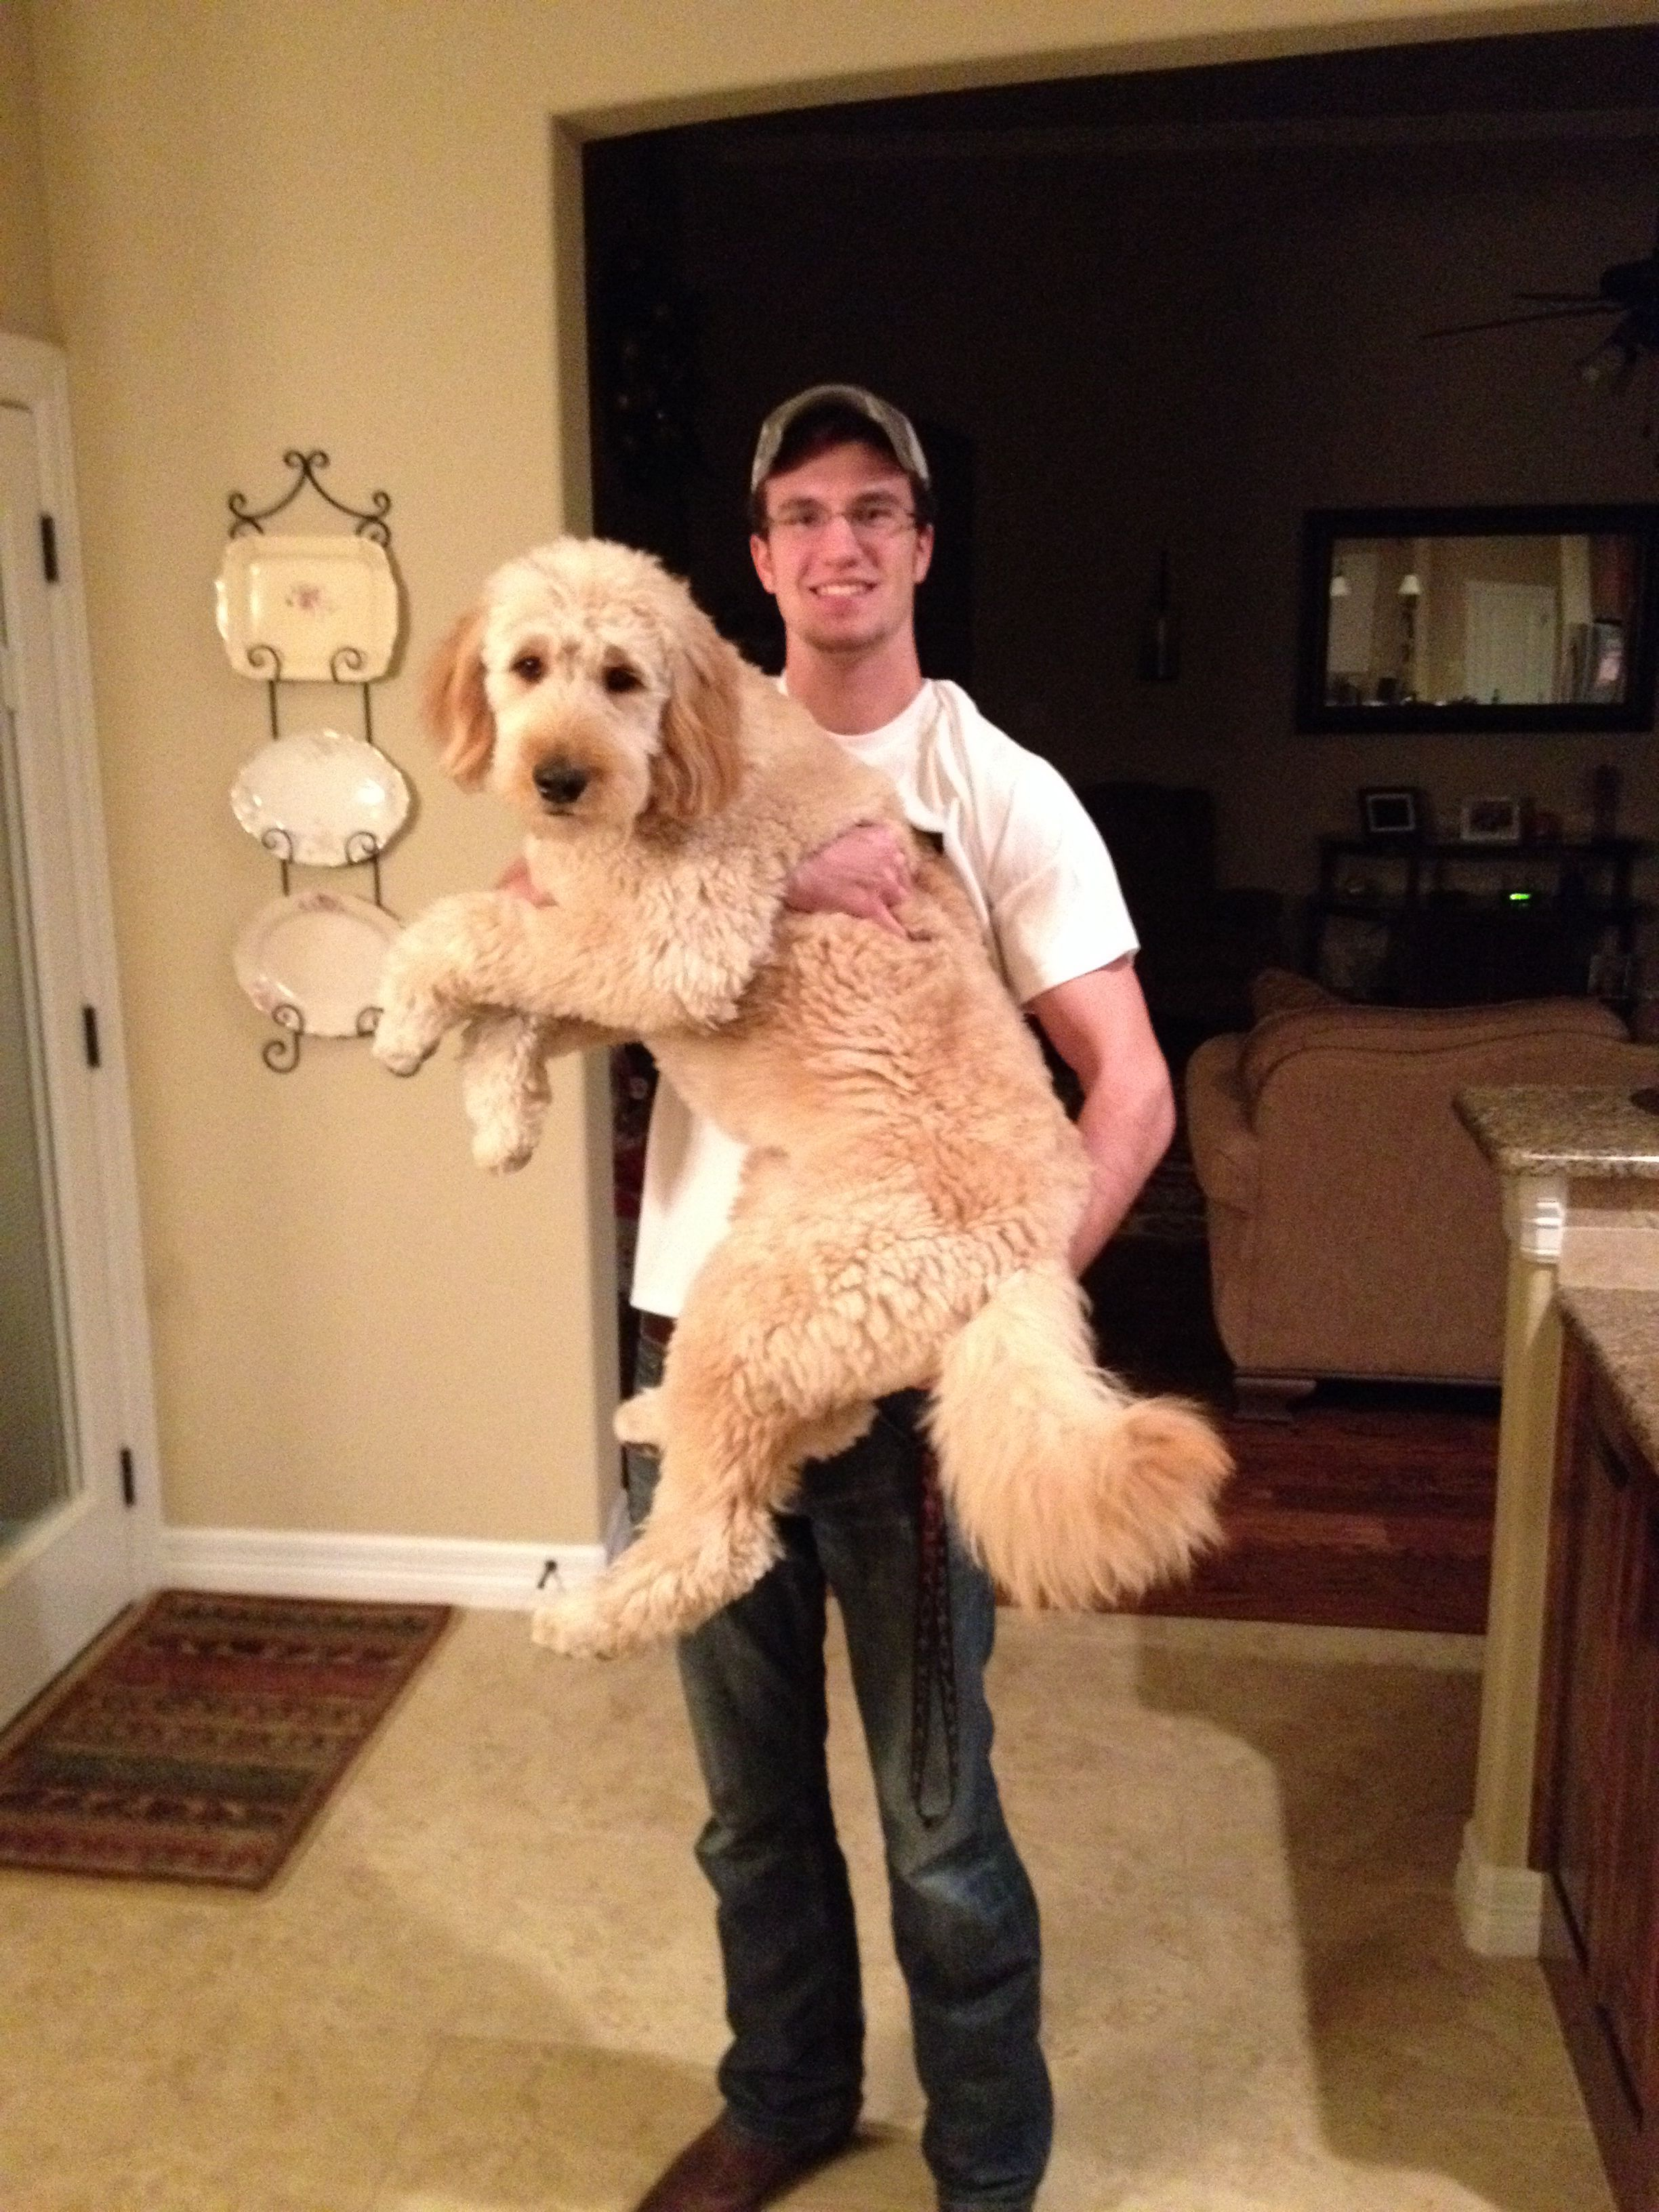 60 Pounds And 1 Year Old Love This Goldendoodle Goldendoodle